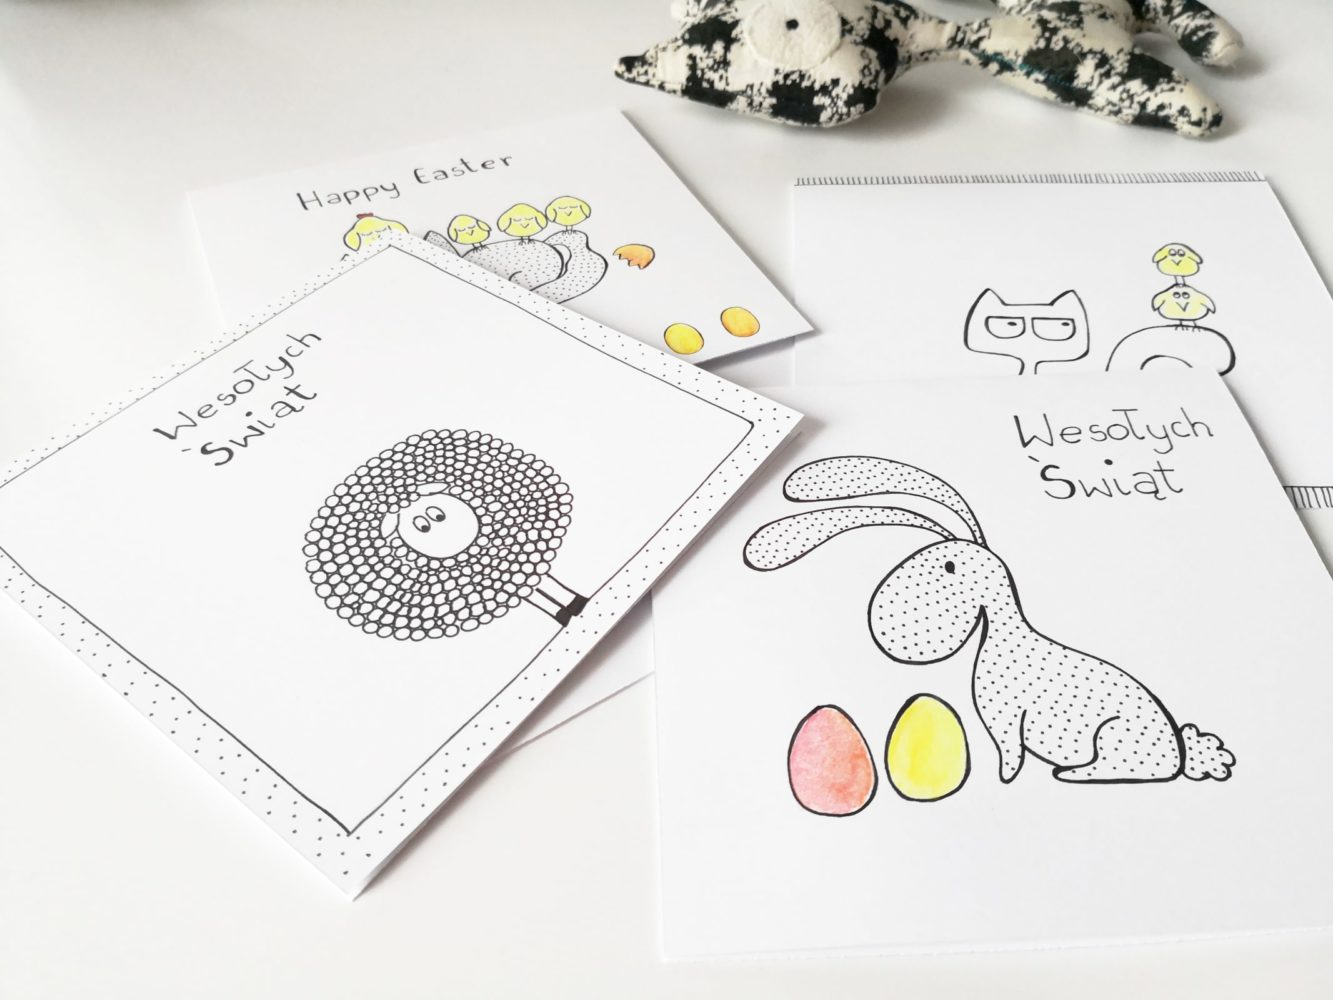 Easter greetings cards handmade fineliner drawing, minimalist